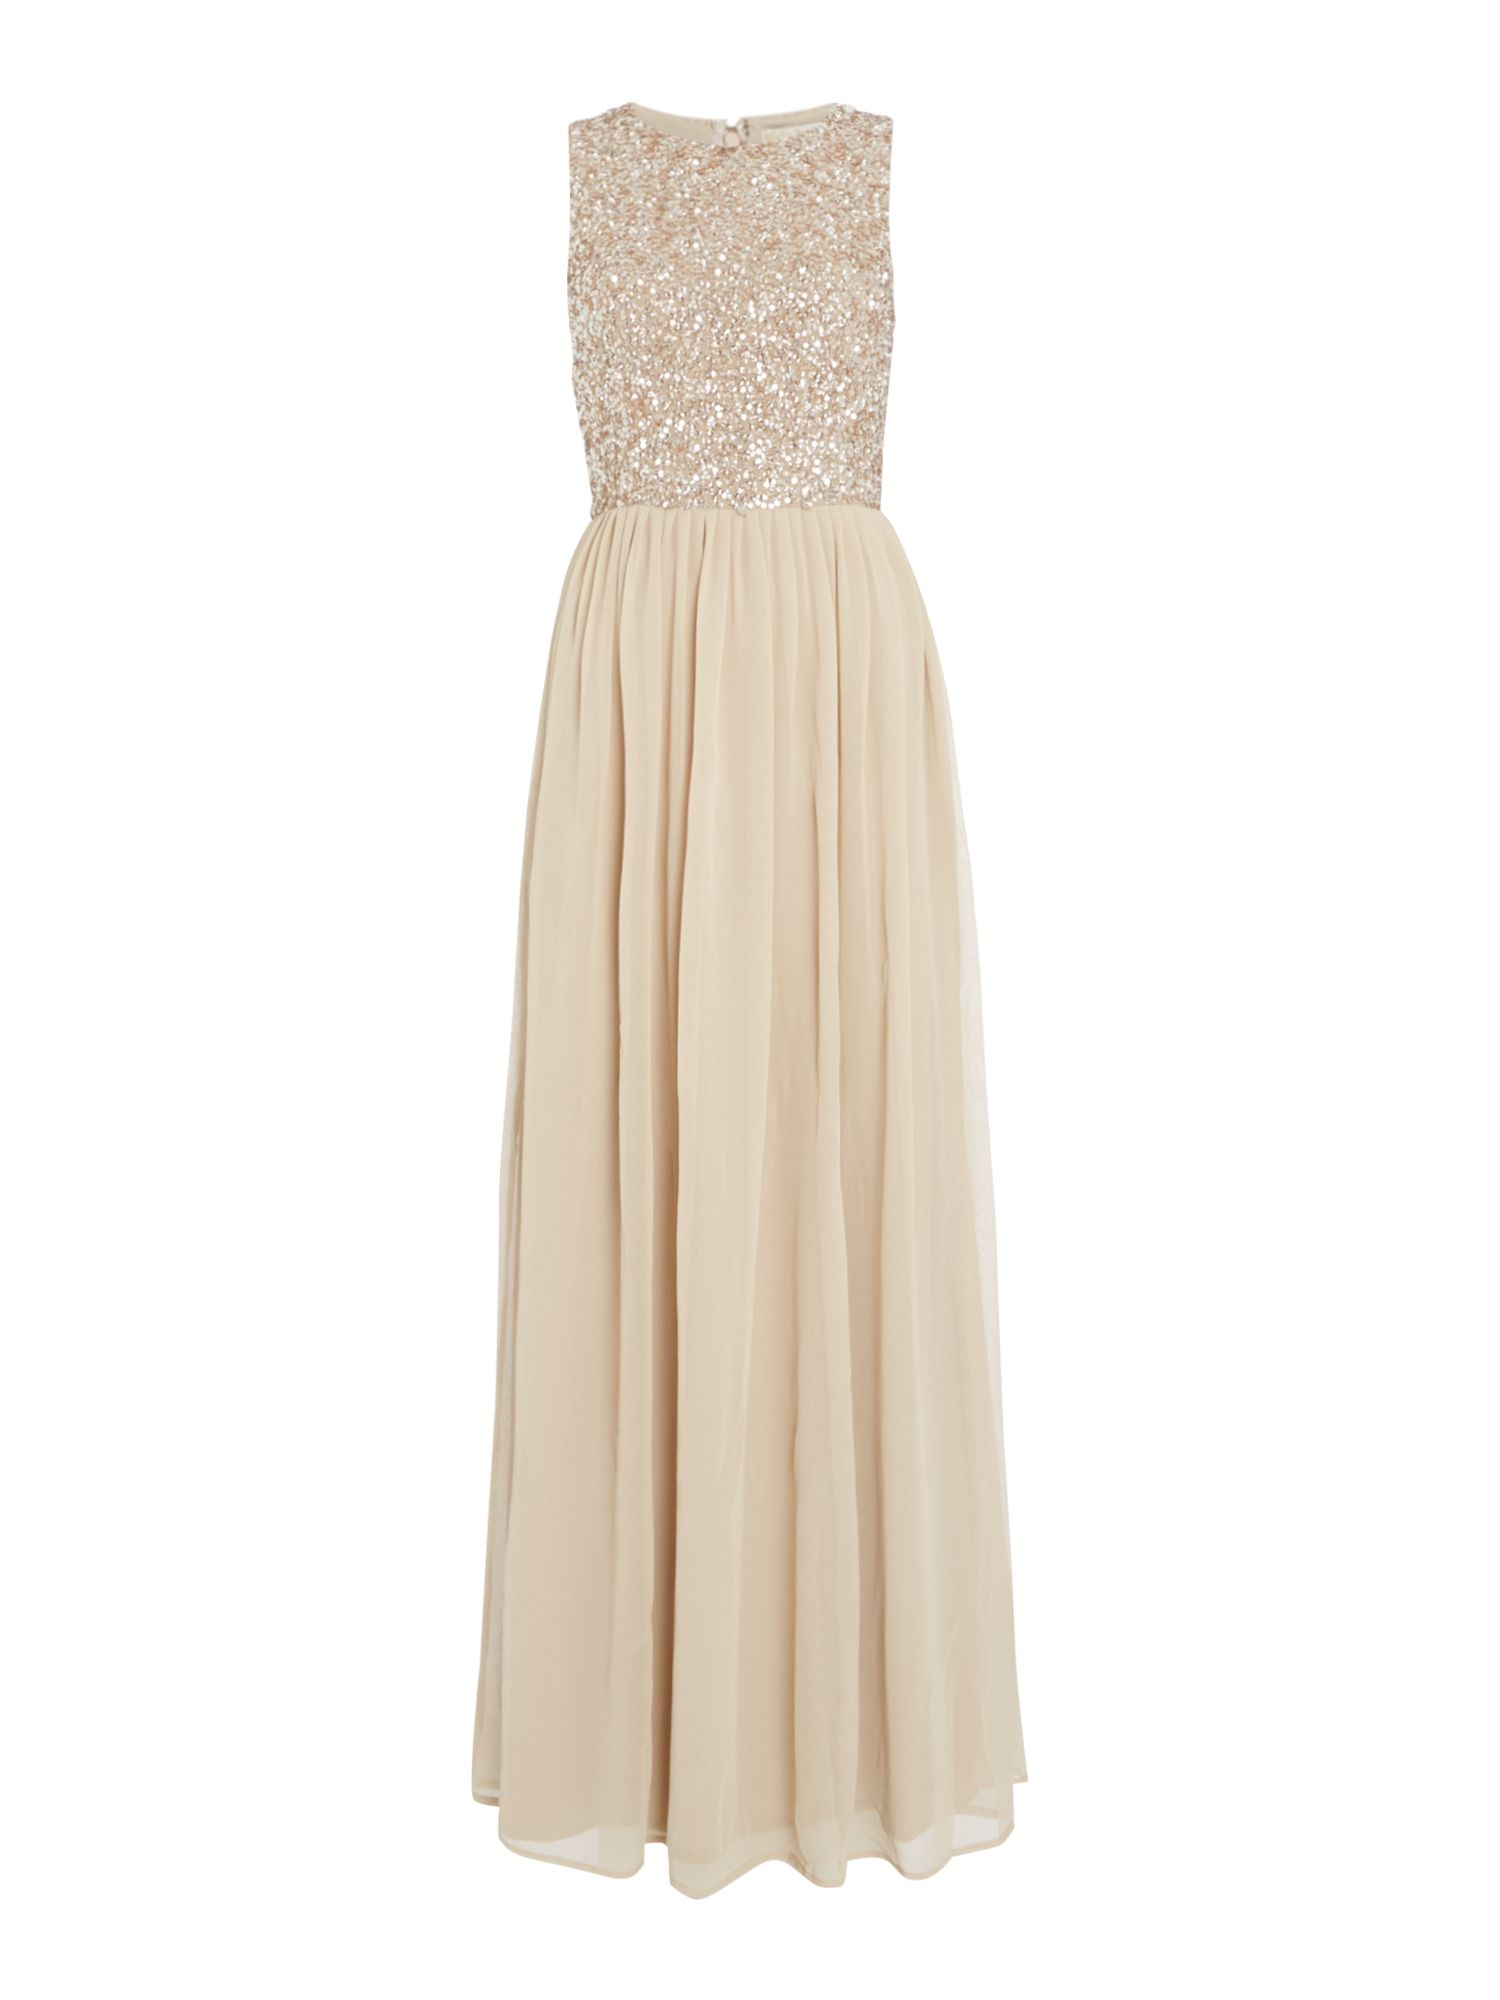 Lace and Beads High neck embellished maxi dress, Nude